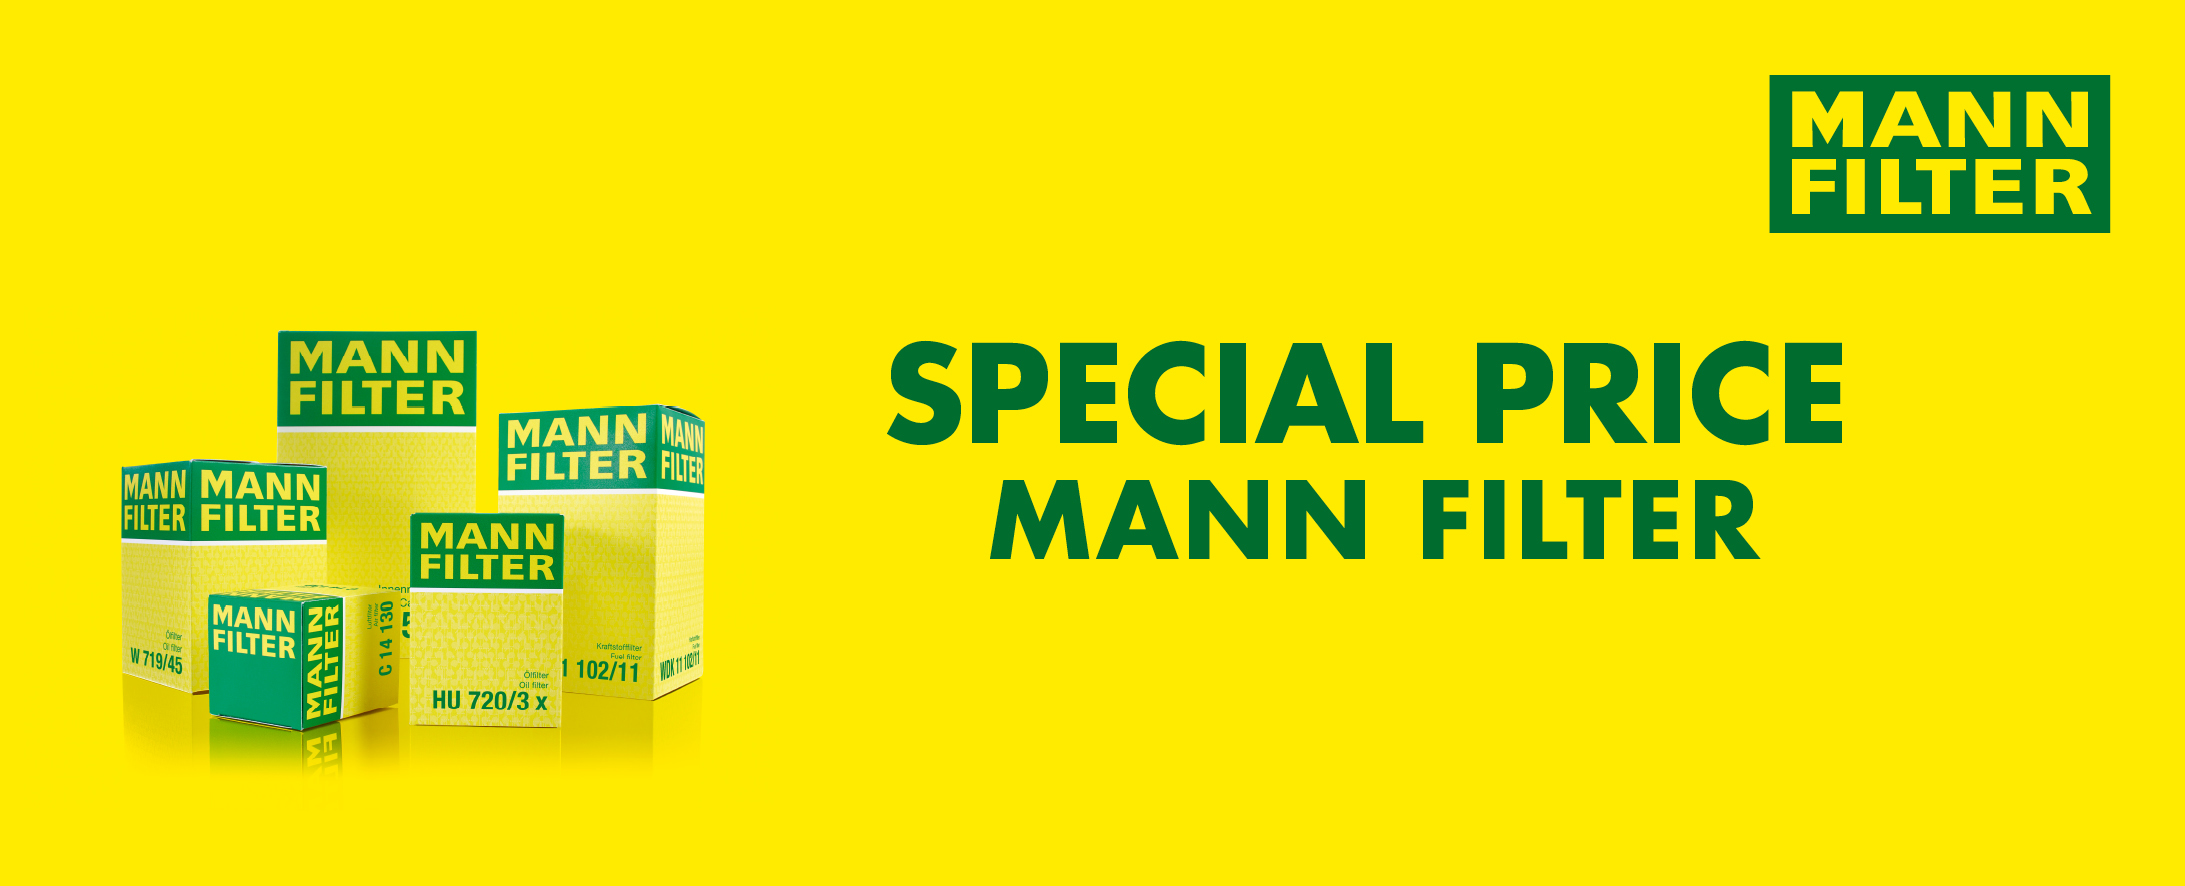 SPECIAL PRICE MANN FILTER